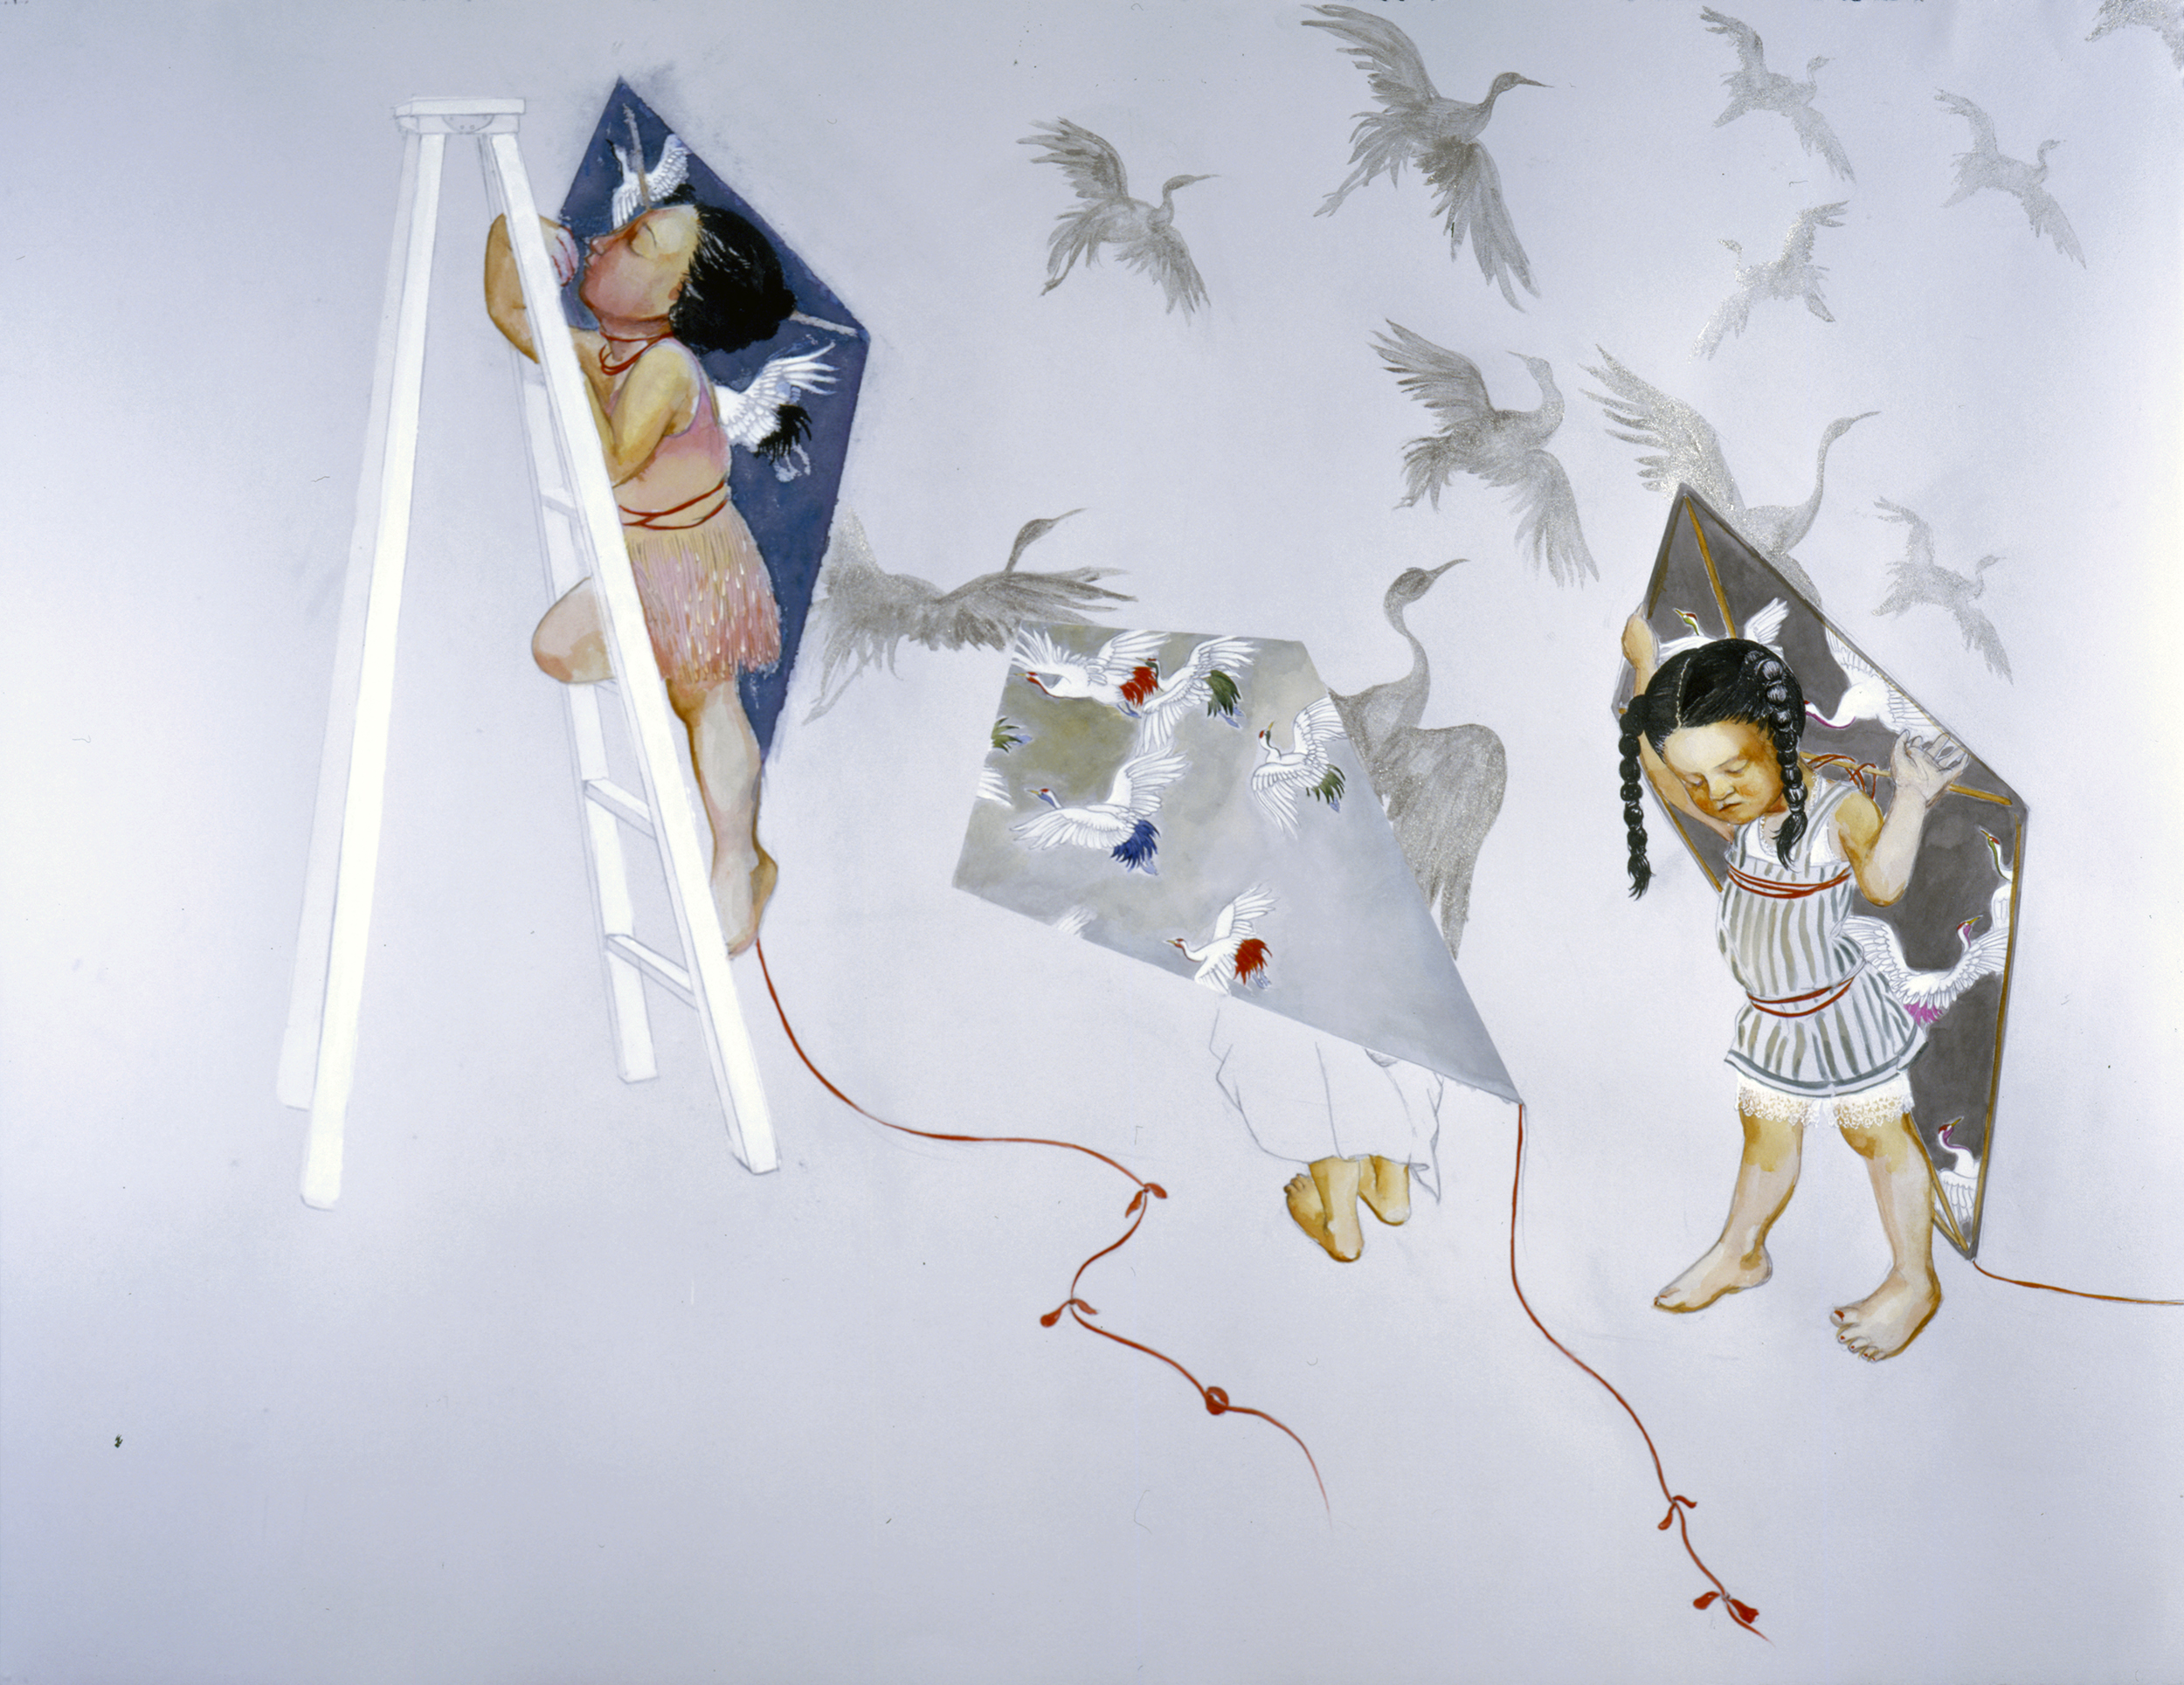 Kite Flying, 2005 Graphite, ink on gray paper 38 X 50 inches Private collection